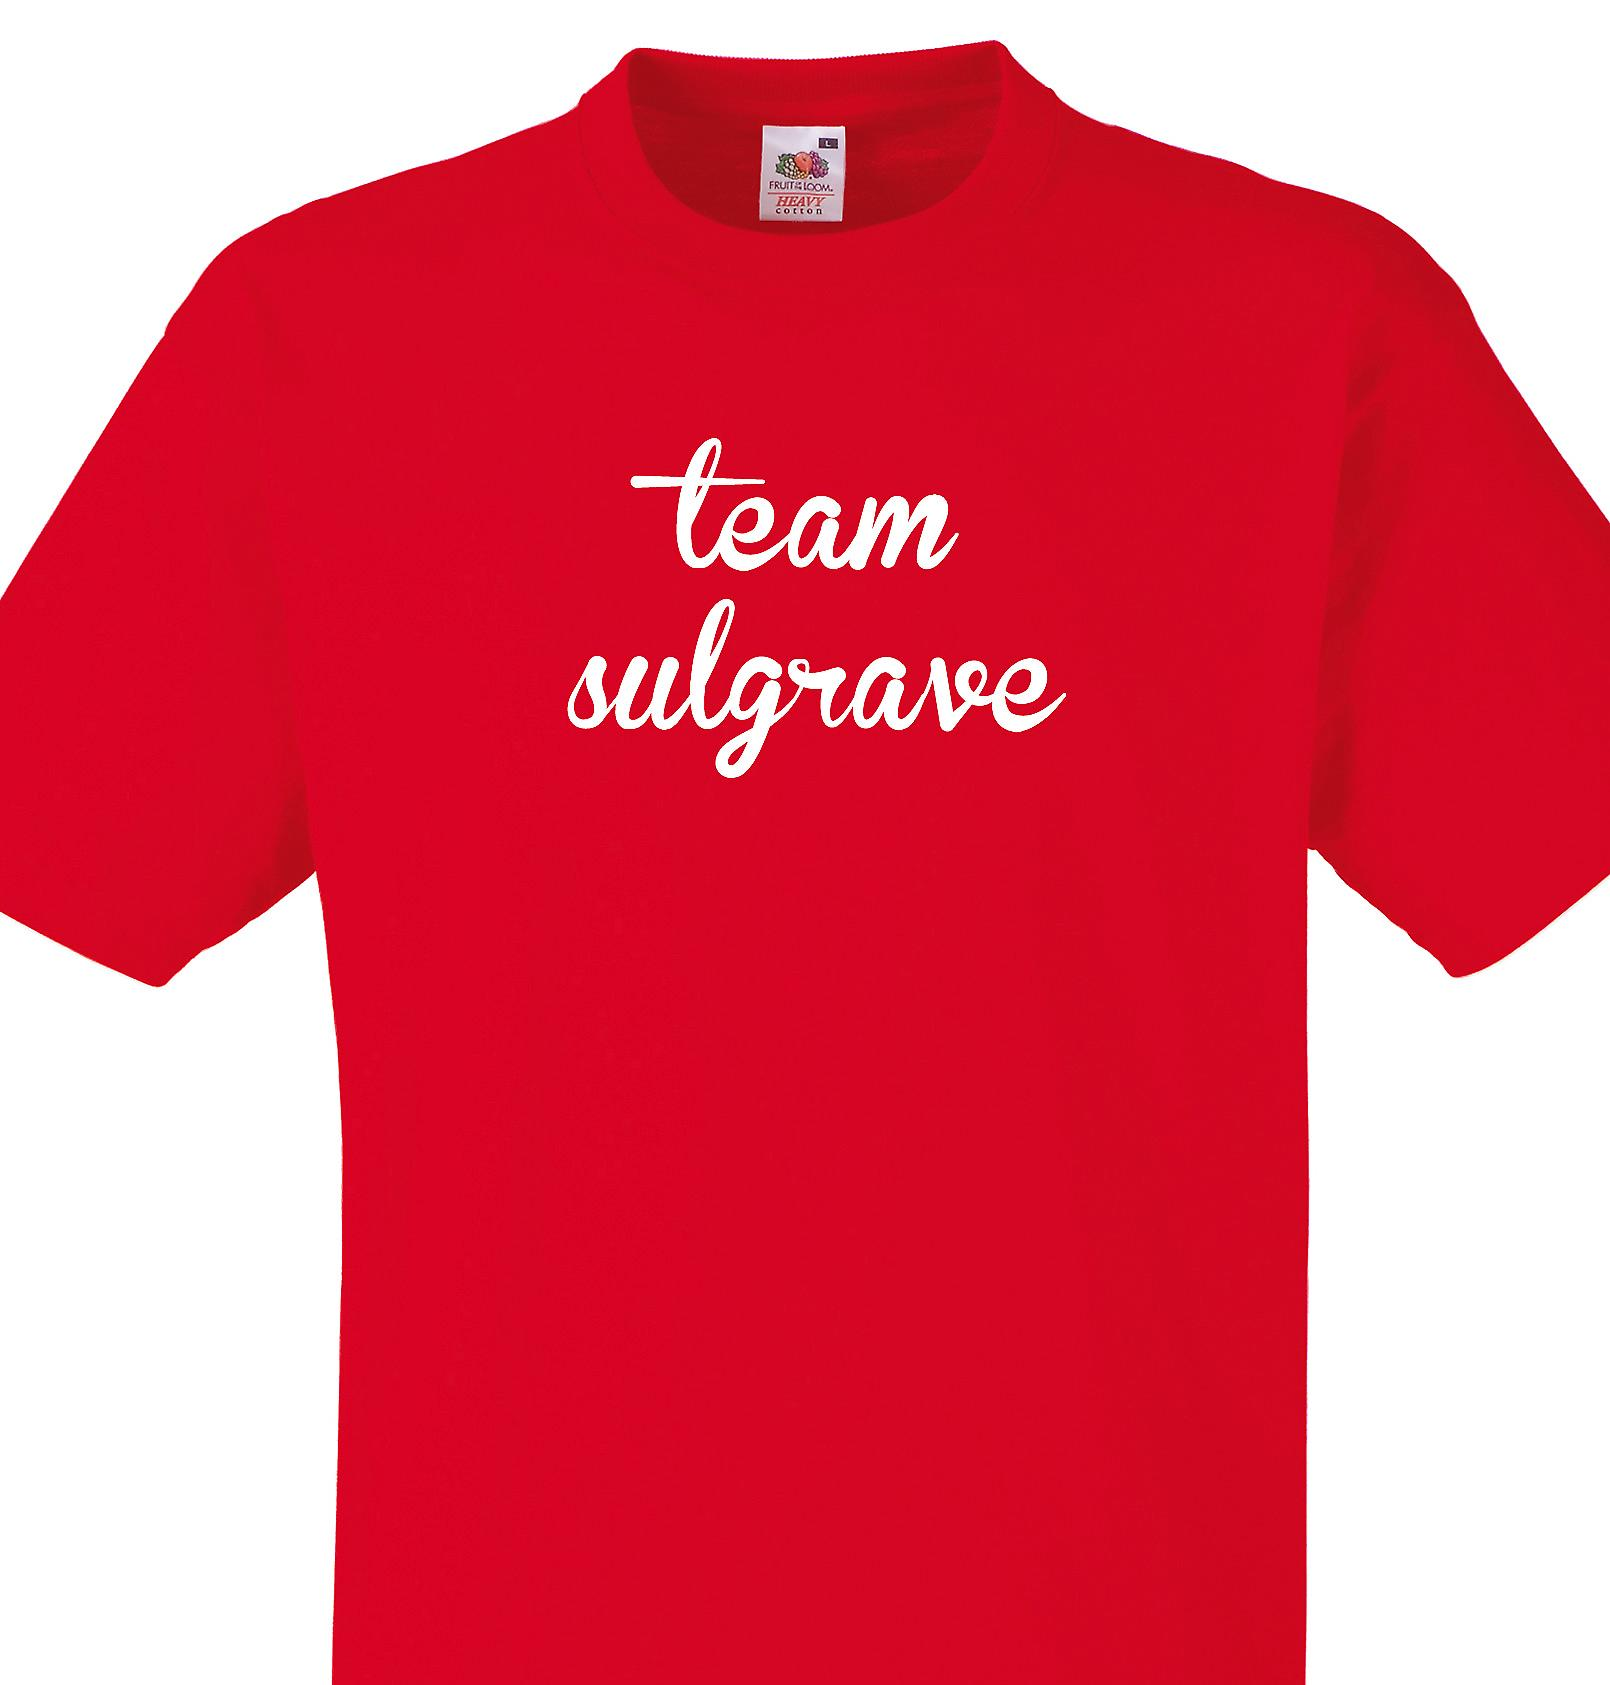 Team Sulgrave Red T shirt